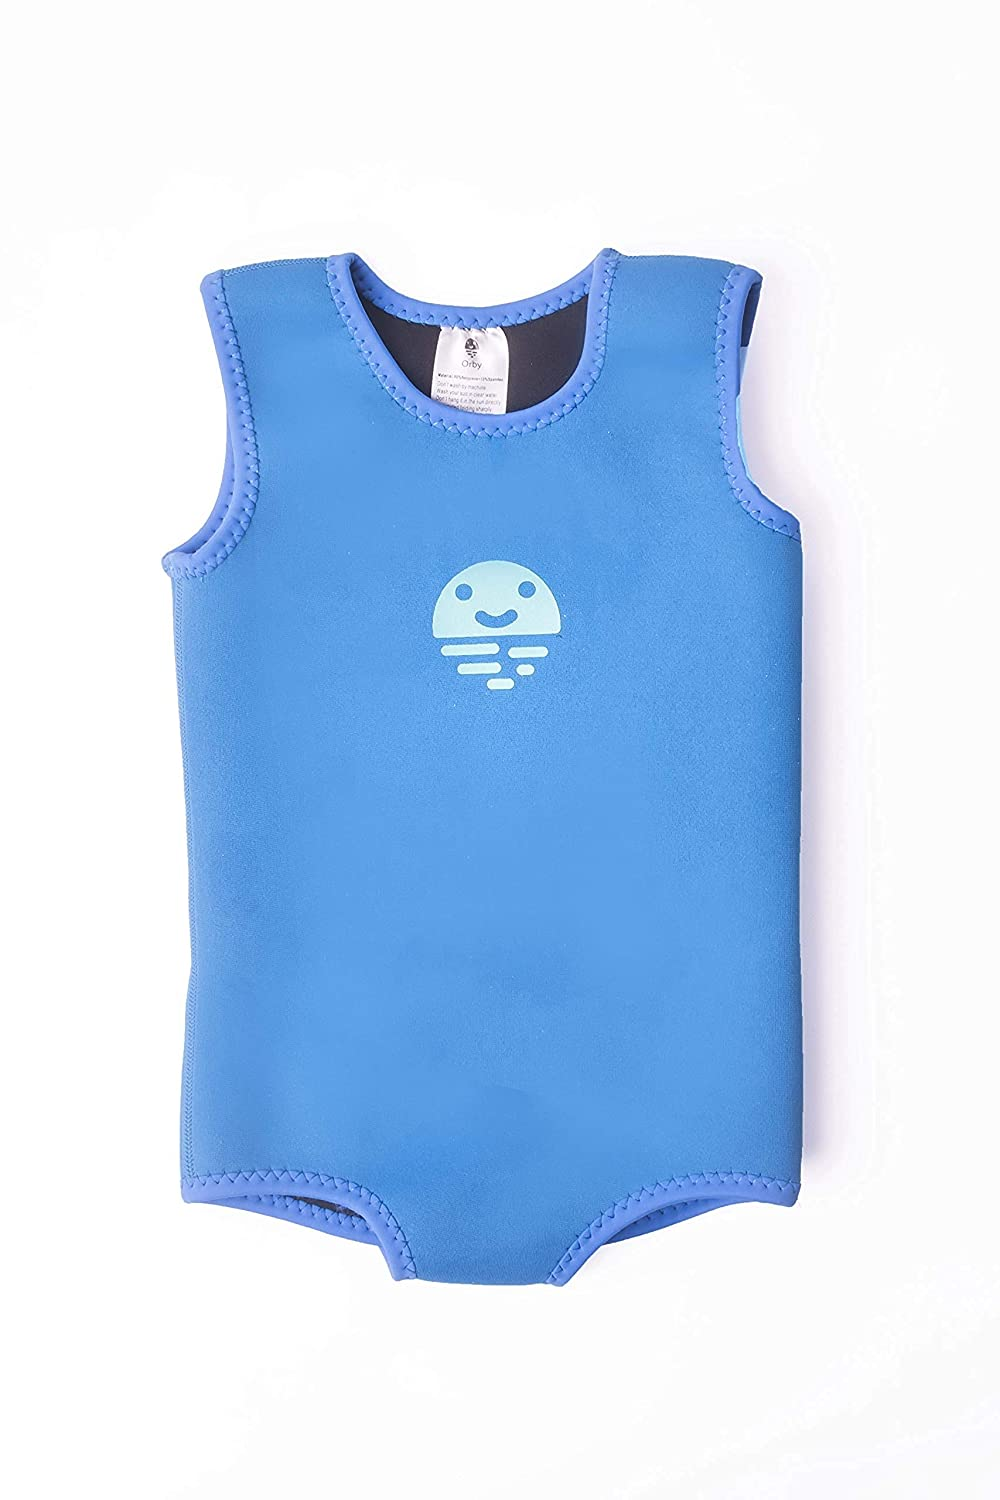 Orby Wrap Warm Neoprene Safe Baby Boy Pool Float Clothing Swimming Wet Suit